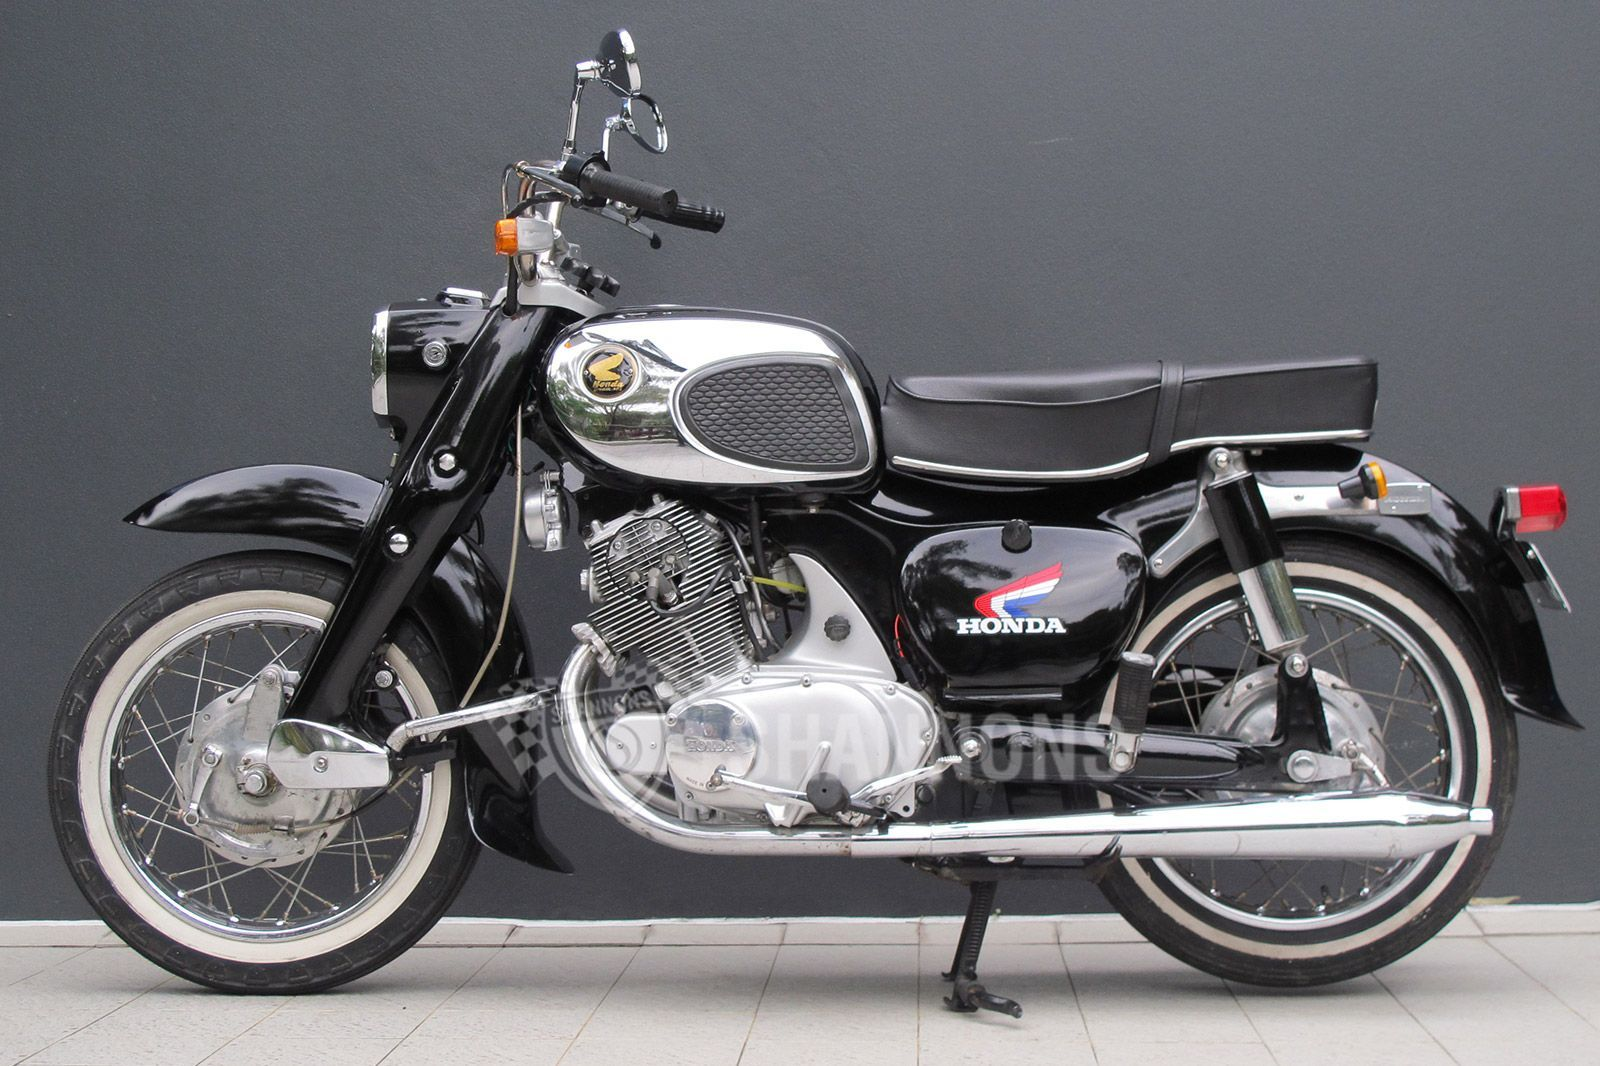 medium resolution of honda dream 305cc motorcycle